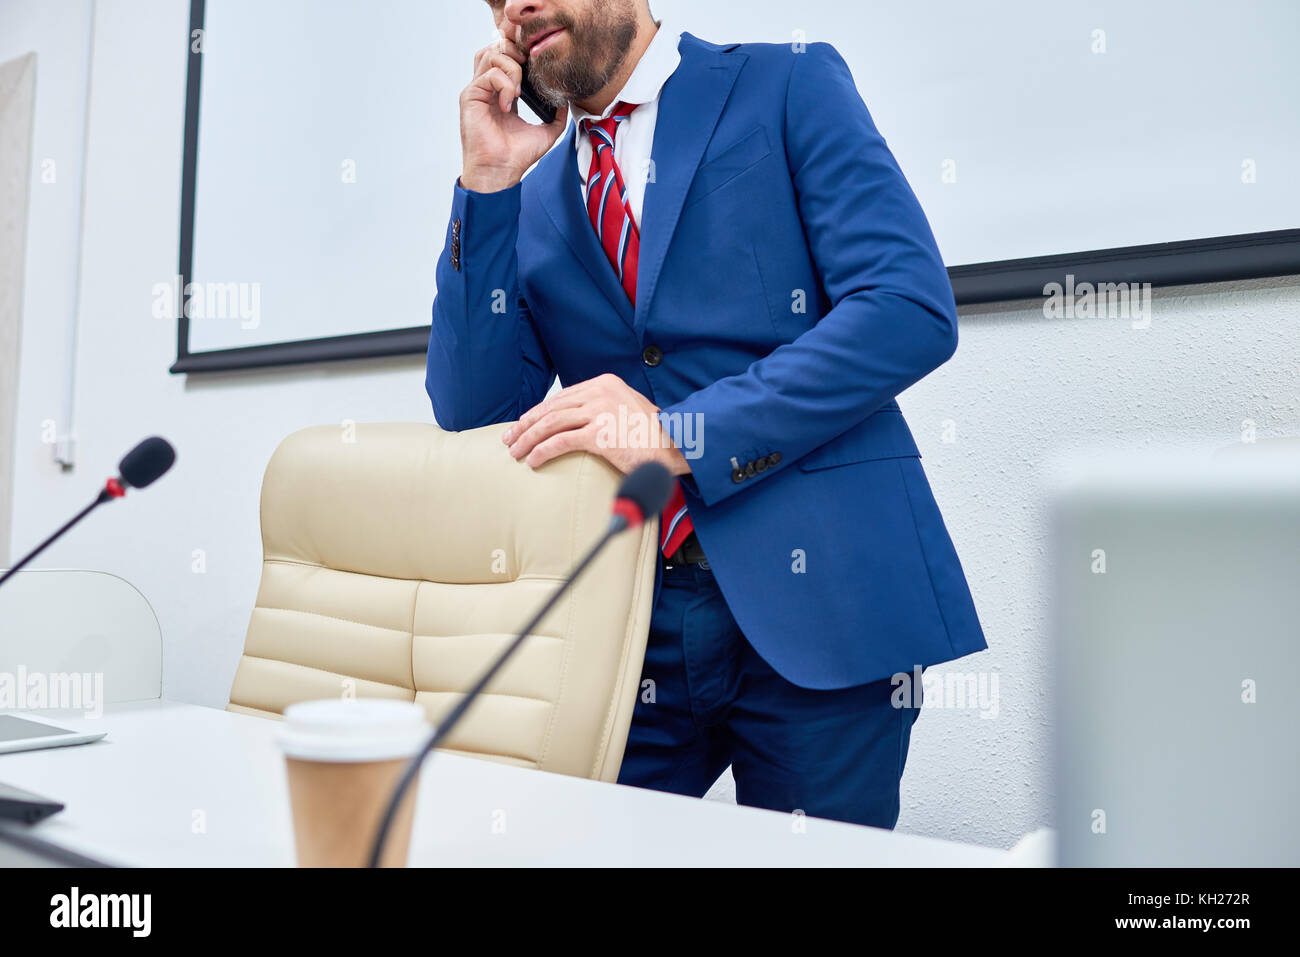 Mid section of unrecognizable bearded businessman seaking by phone waiting for press conference meeting in business - Stock Image